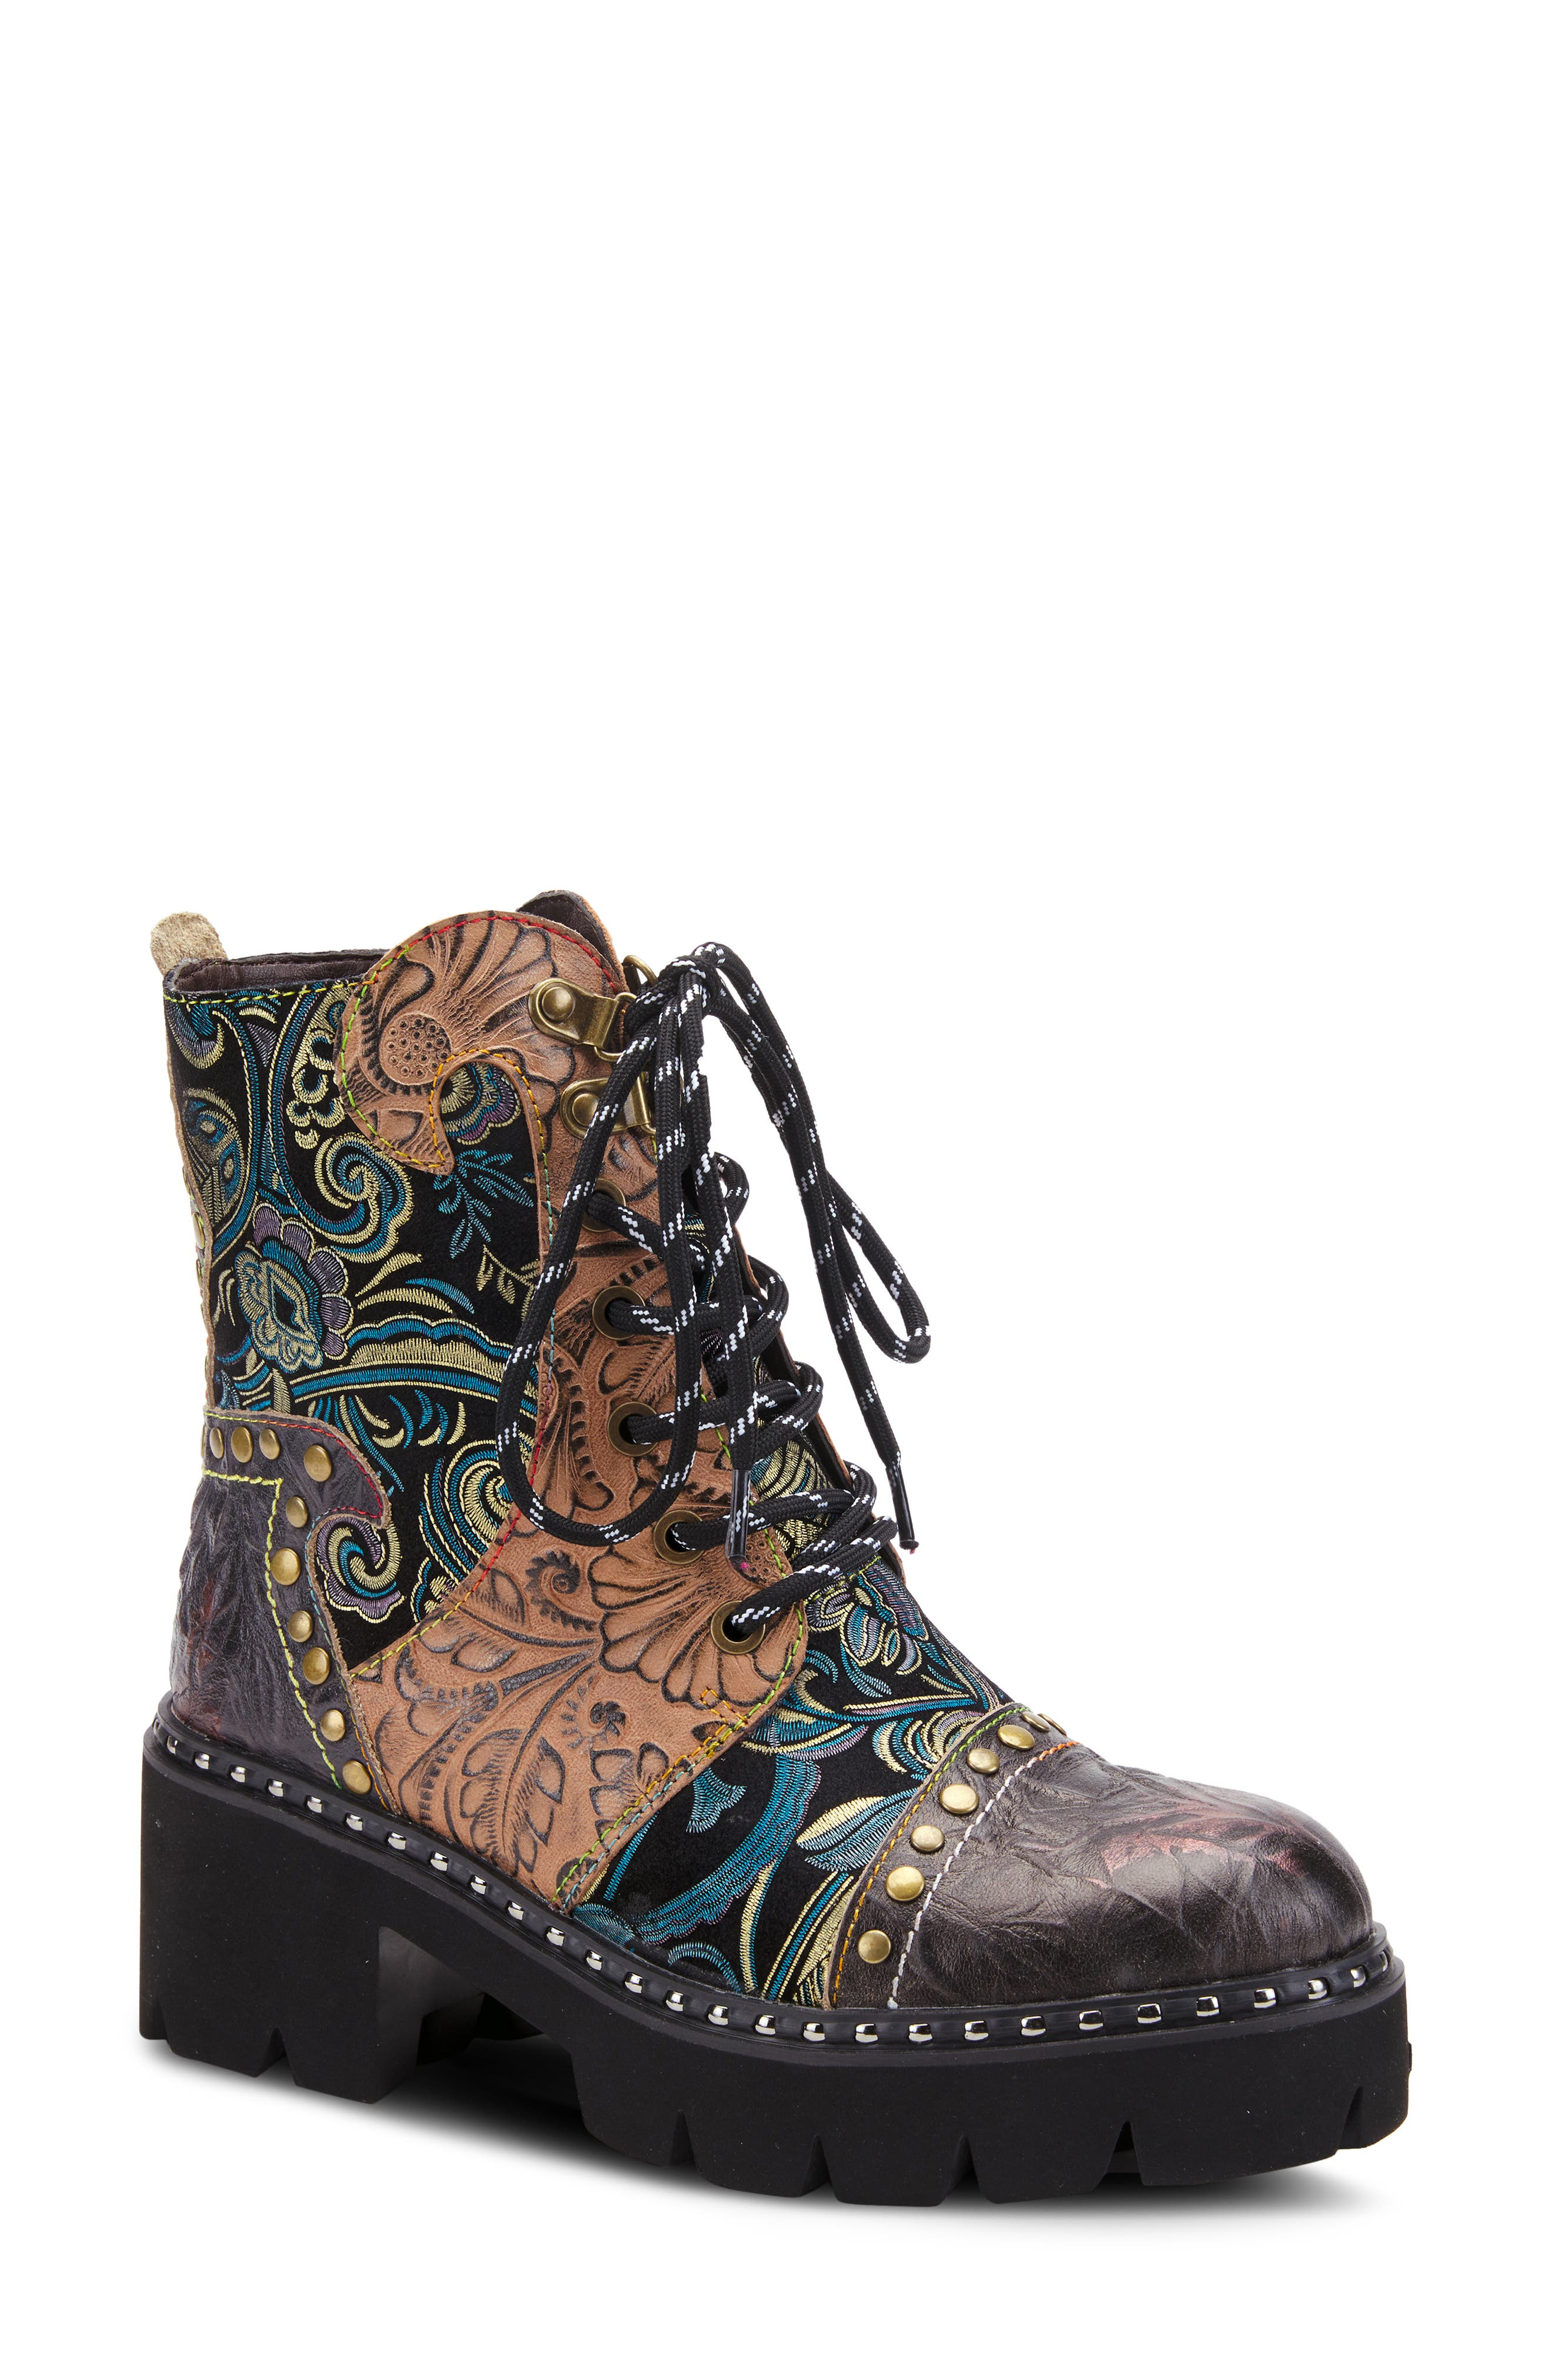 A riot of color and textures plays across this standout combat bootie accented by mixed-finish rivets and studs and grounded by a lugged platform sole. Style Name:L\\\'Artiste Severe Combat Bootie (Women). Style Number: 6117429. Available in stores.